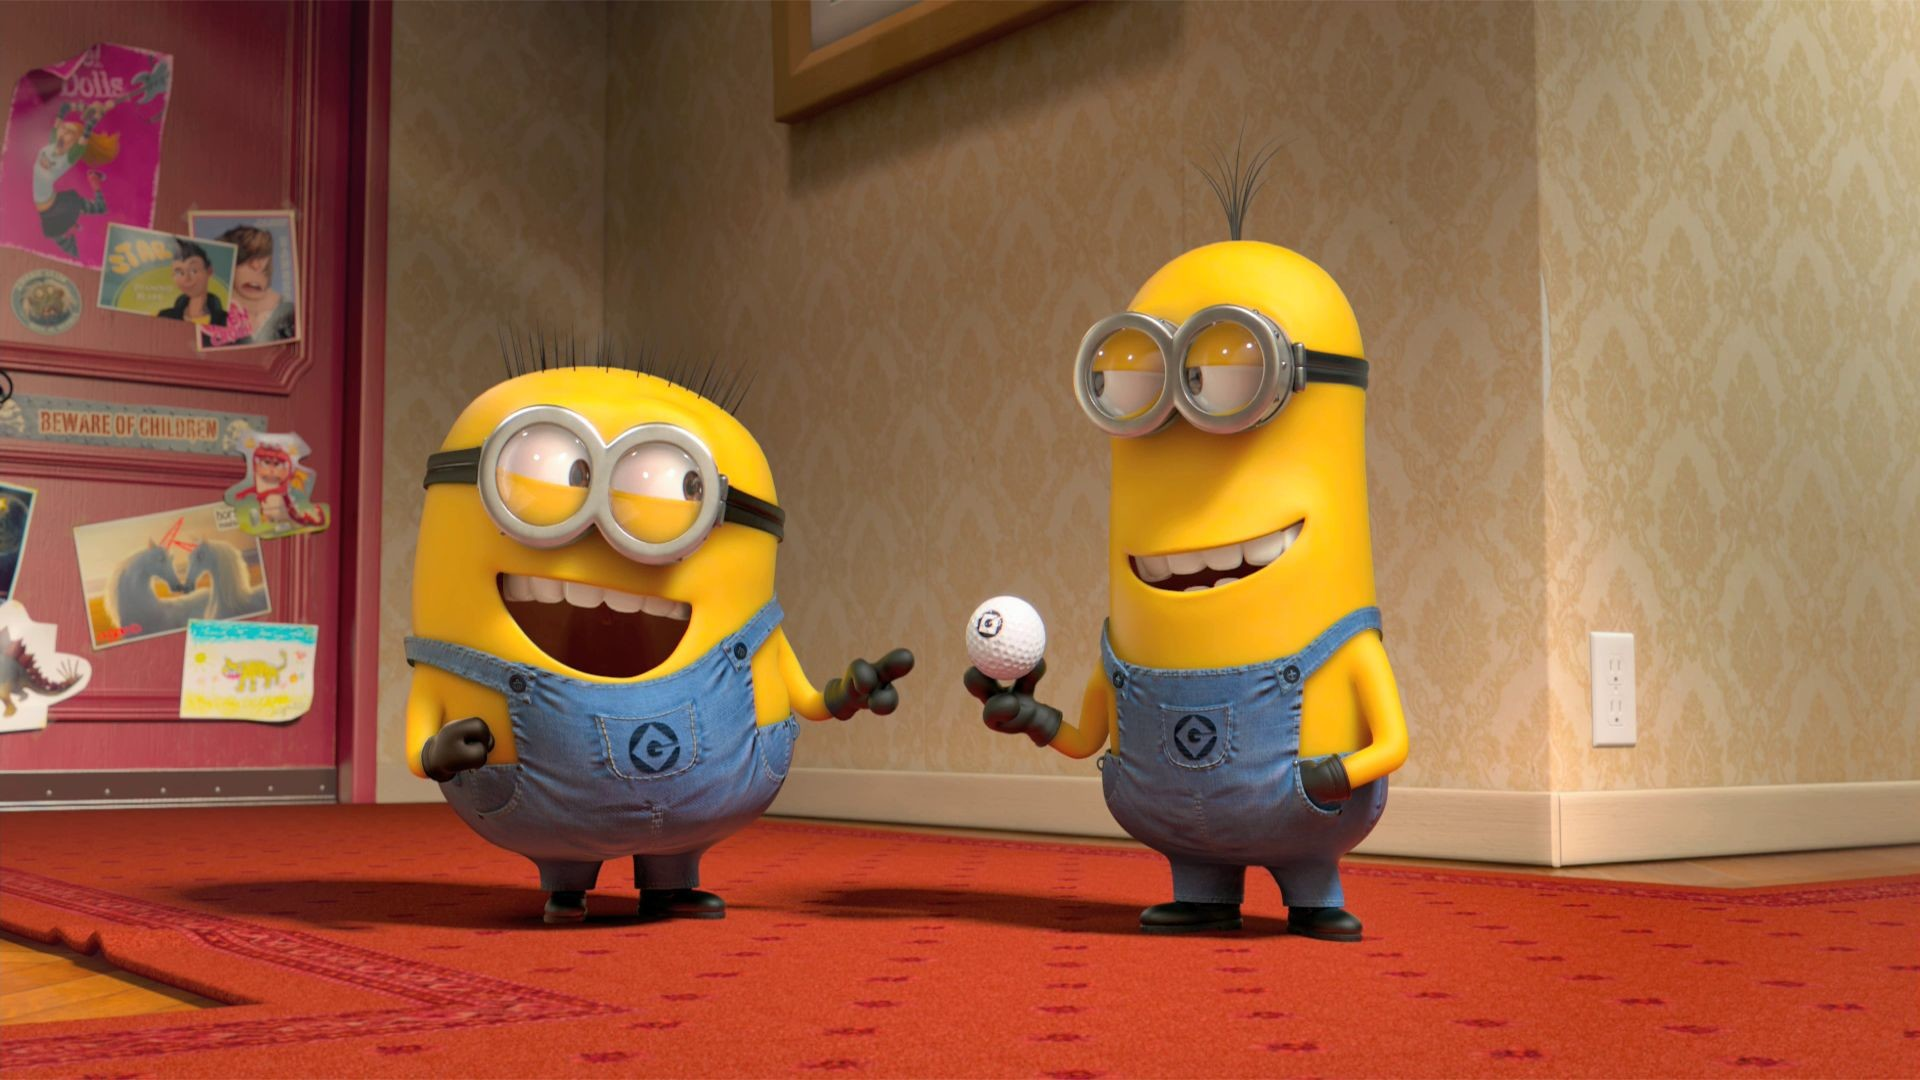 Res: 1920x1080, Despicable Me Minion Wallpapers Group 2560×1440 Despicable Me Pictures  Wallpapers (36 Wallpapers) | Adorable Wallpapers